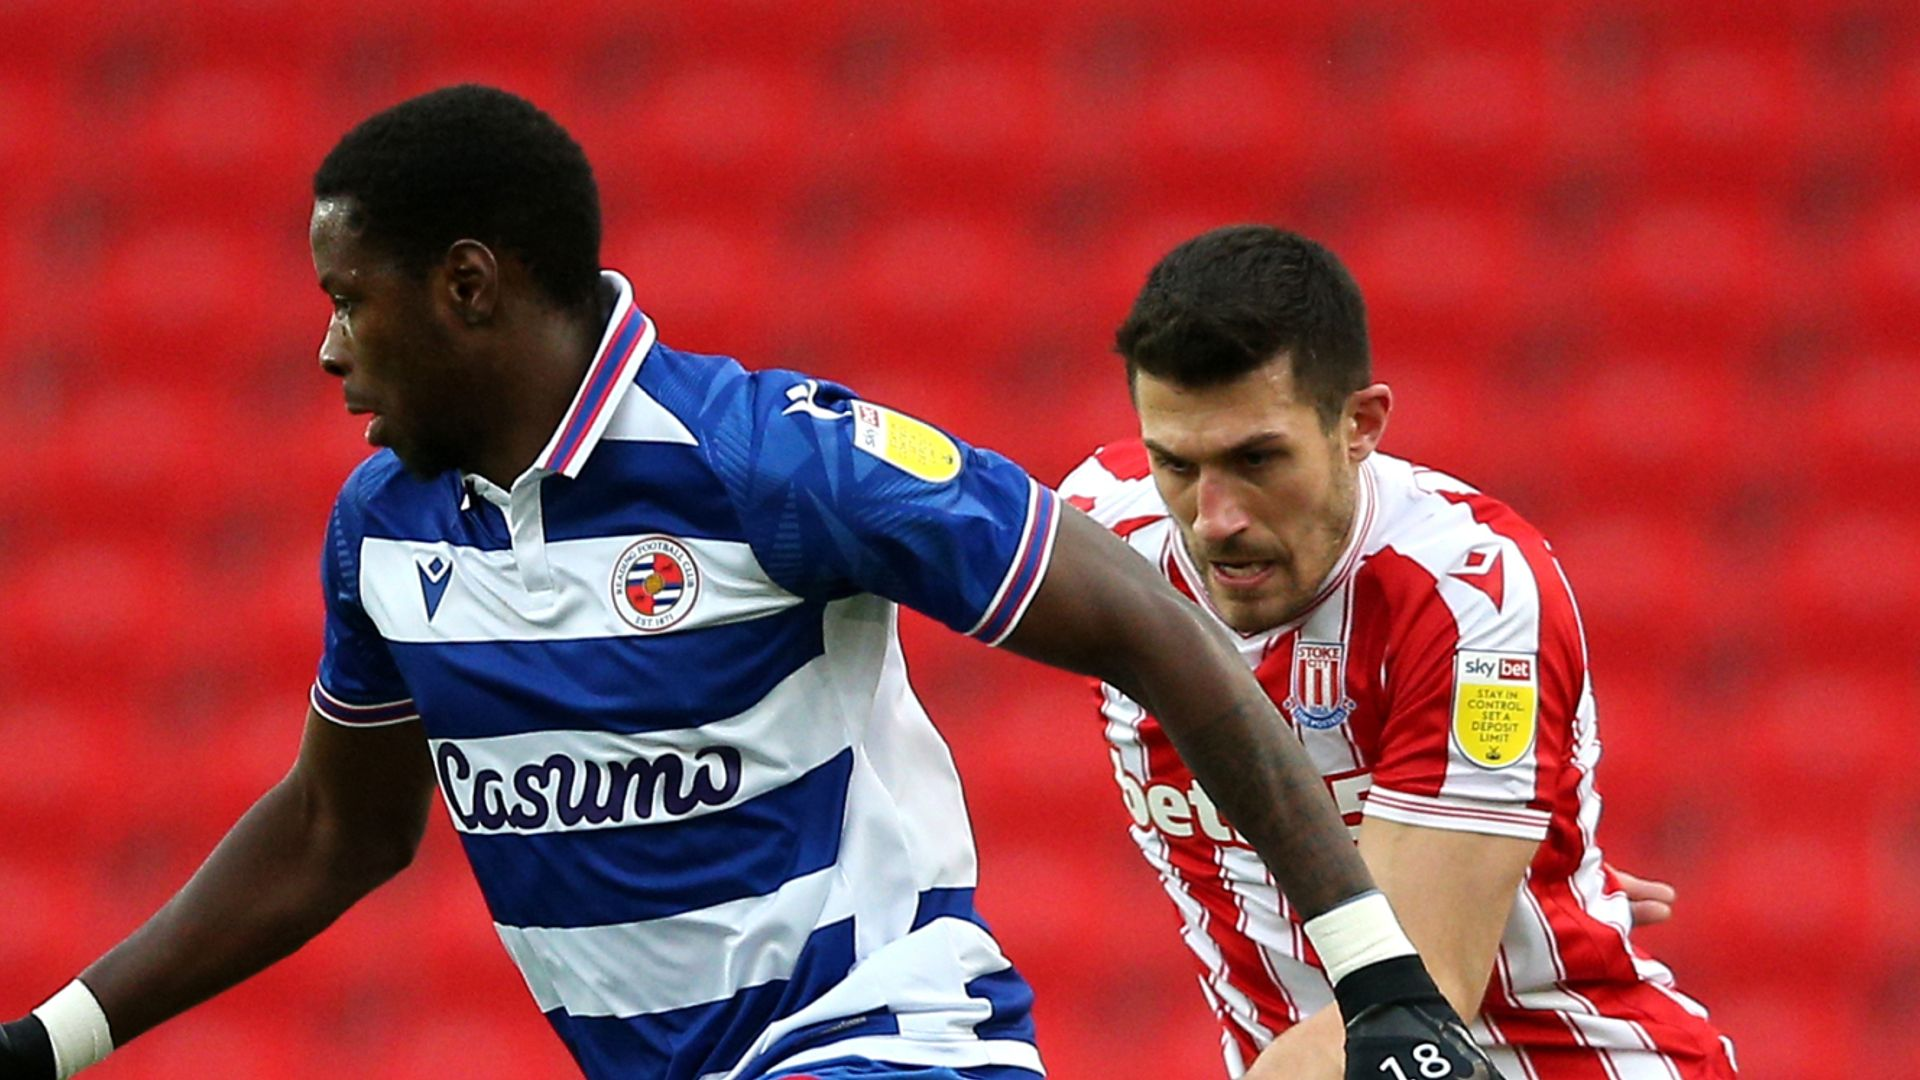 Stoke and Reading play out goalless draw